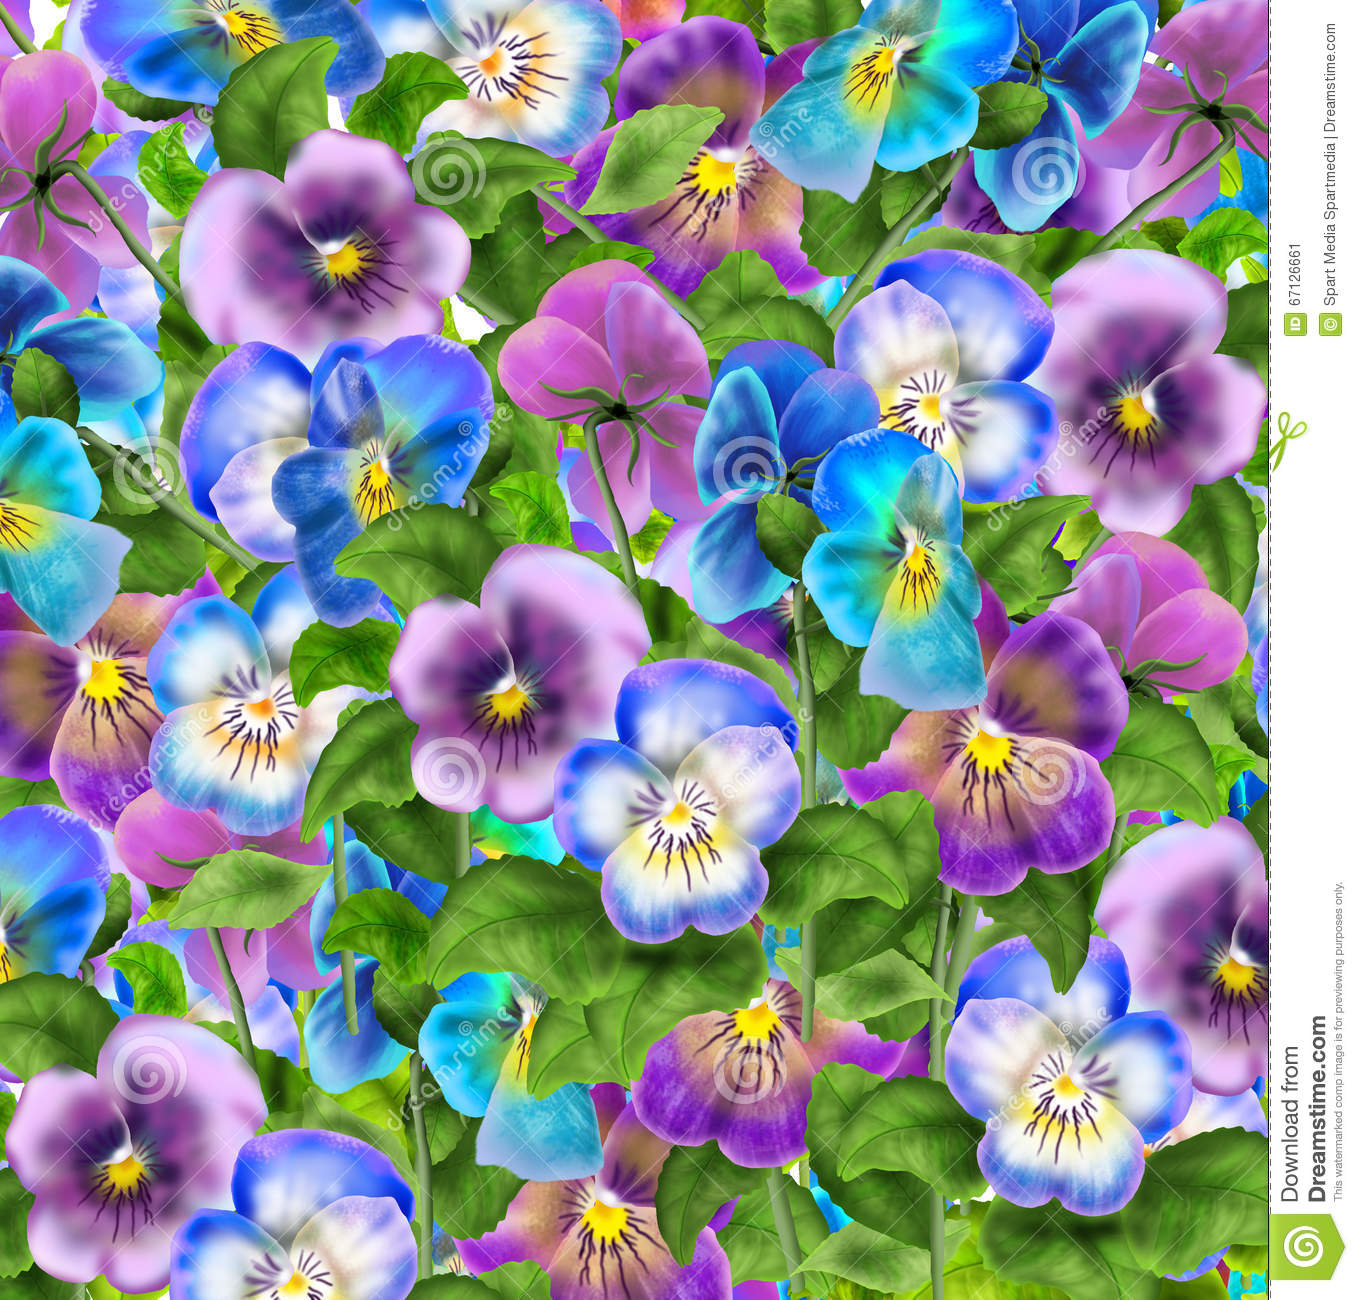 Download Pansy flowers pattern 2019 stock illustration. Illustration of fabric - 67126661